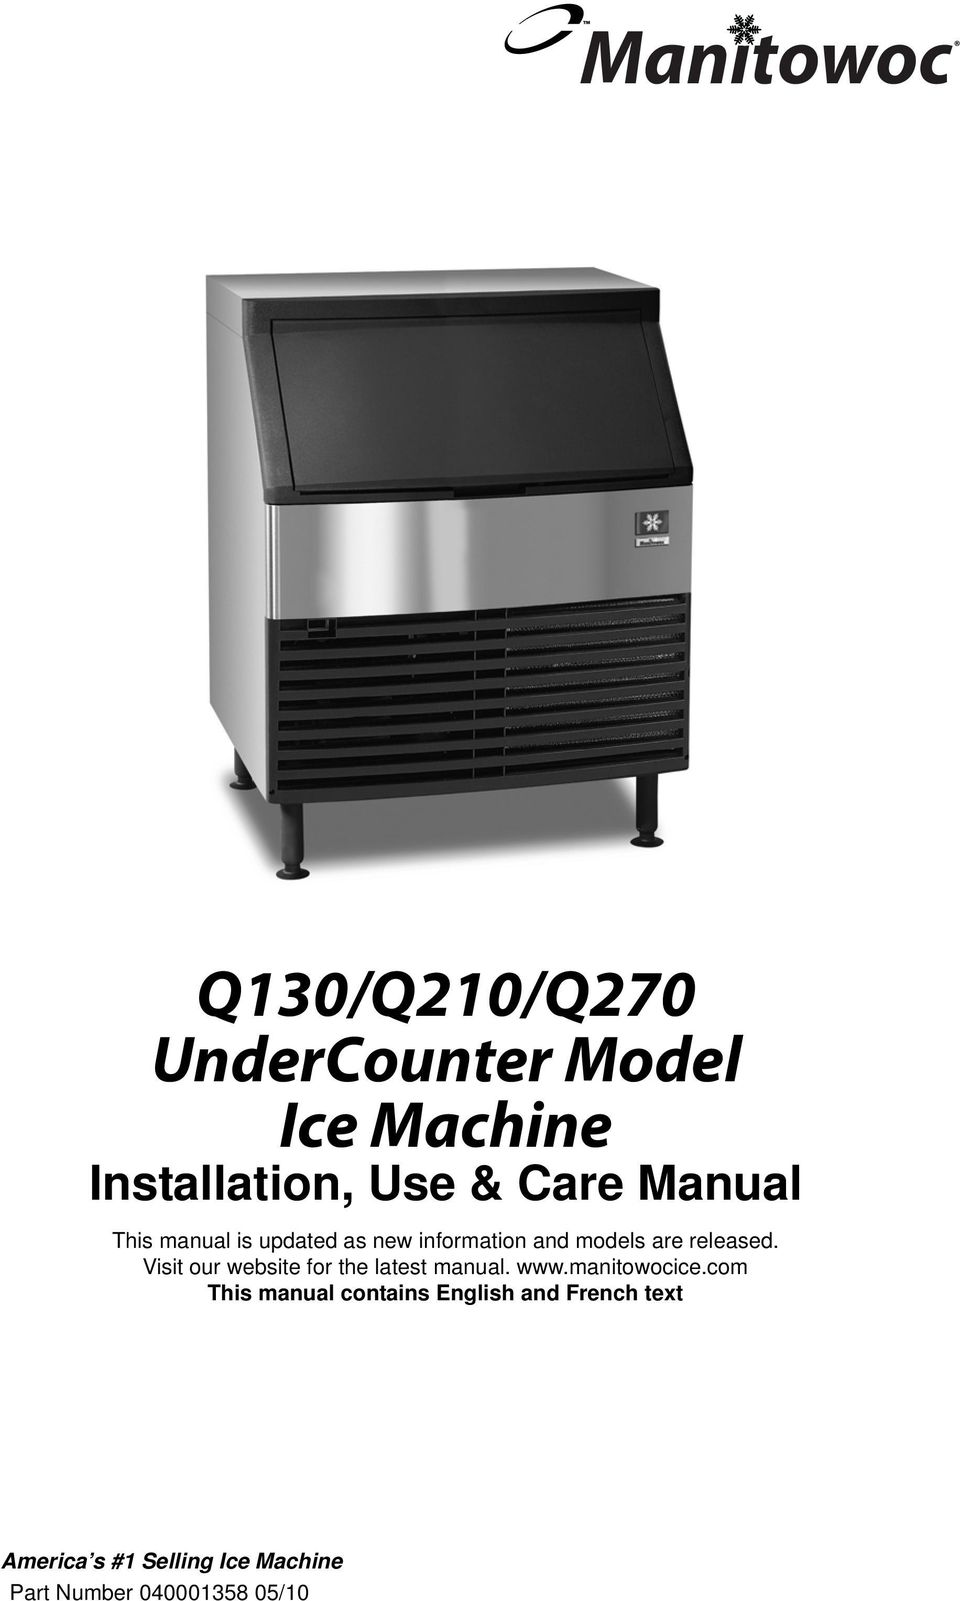 Manitowoc. Q130/Q210/Q270 UnderCounter Model Ice Machine ... on